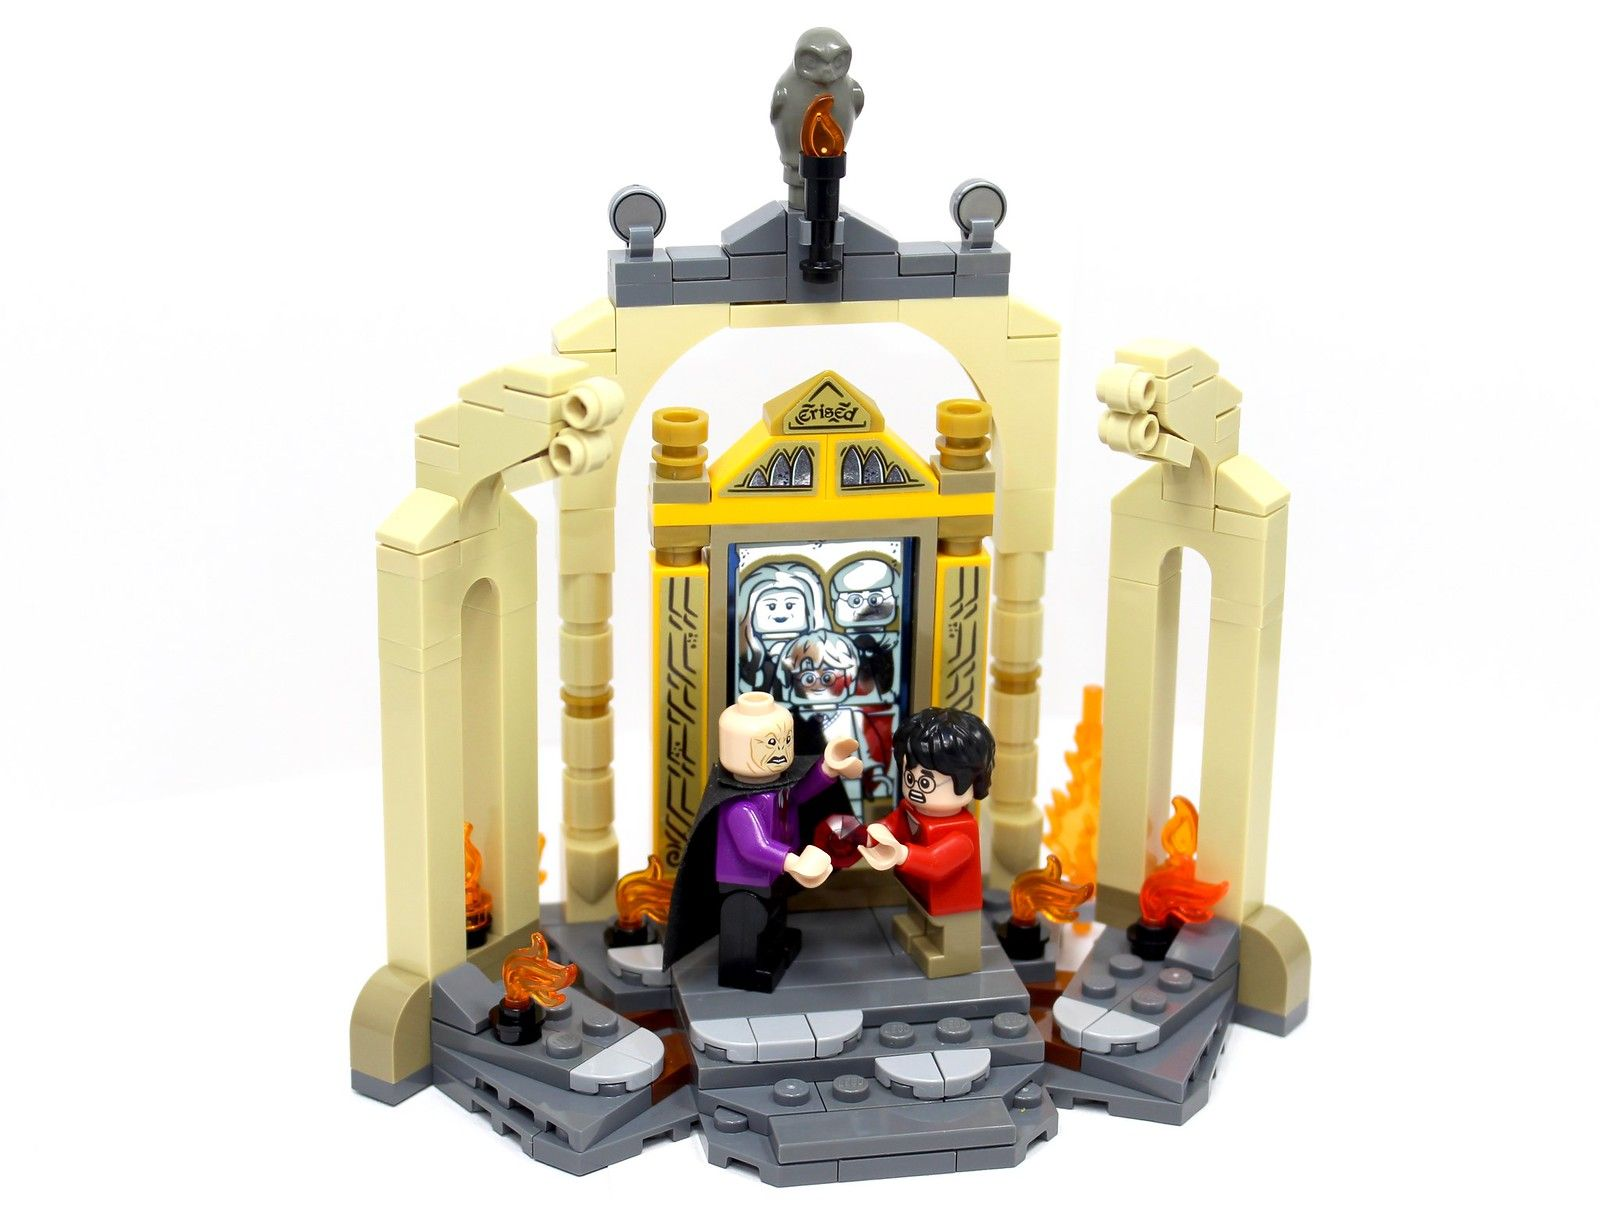 Lego Harry Potter 4702 Remake In 2021 Lego Harry Potter Harry Potter Bookends Lego